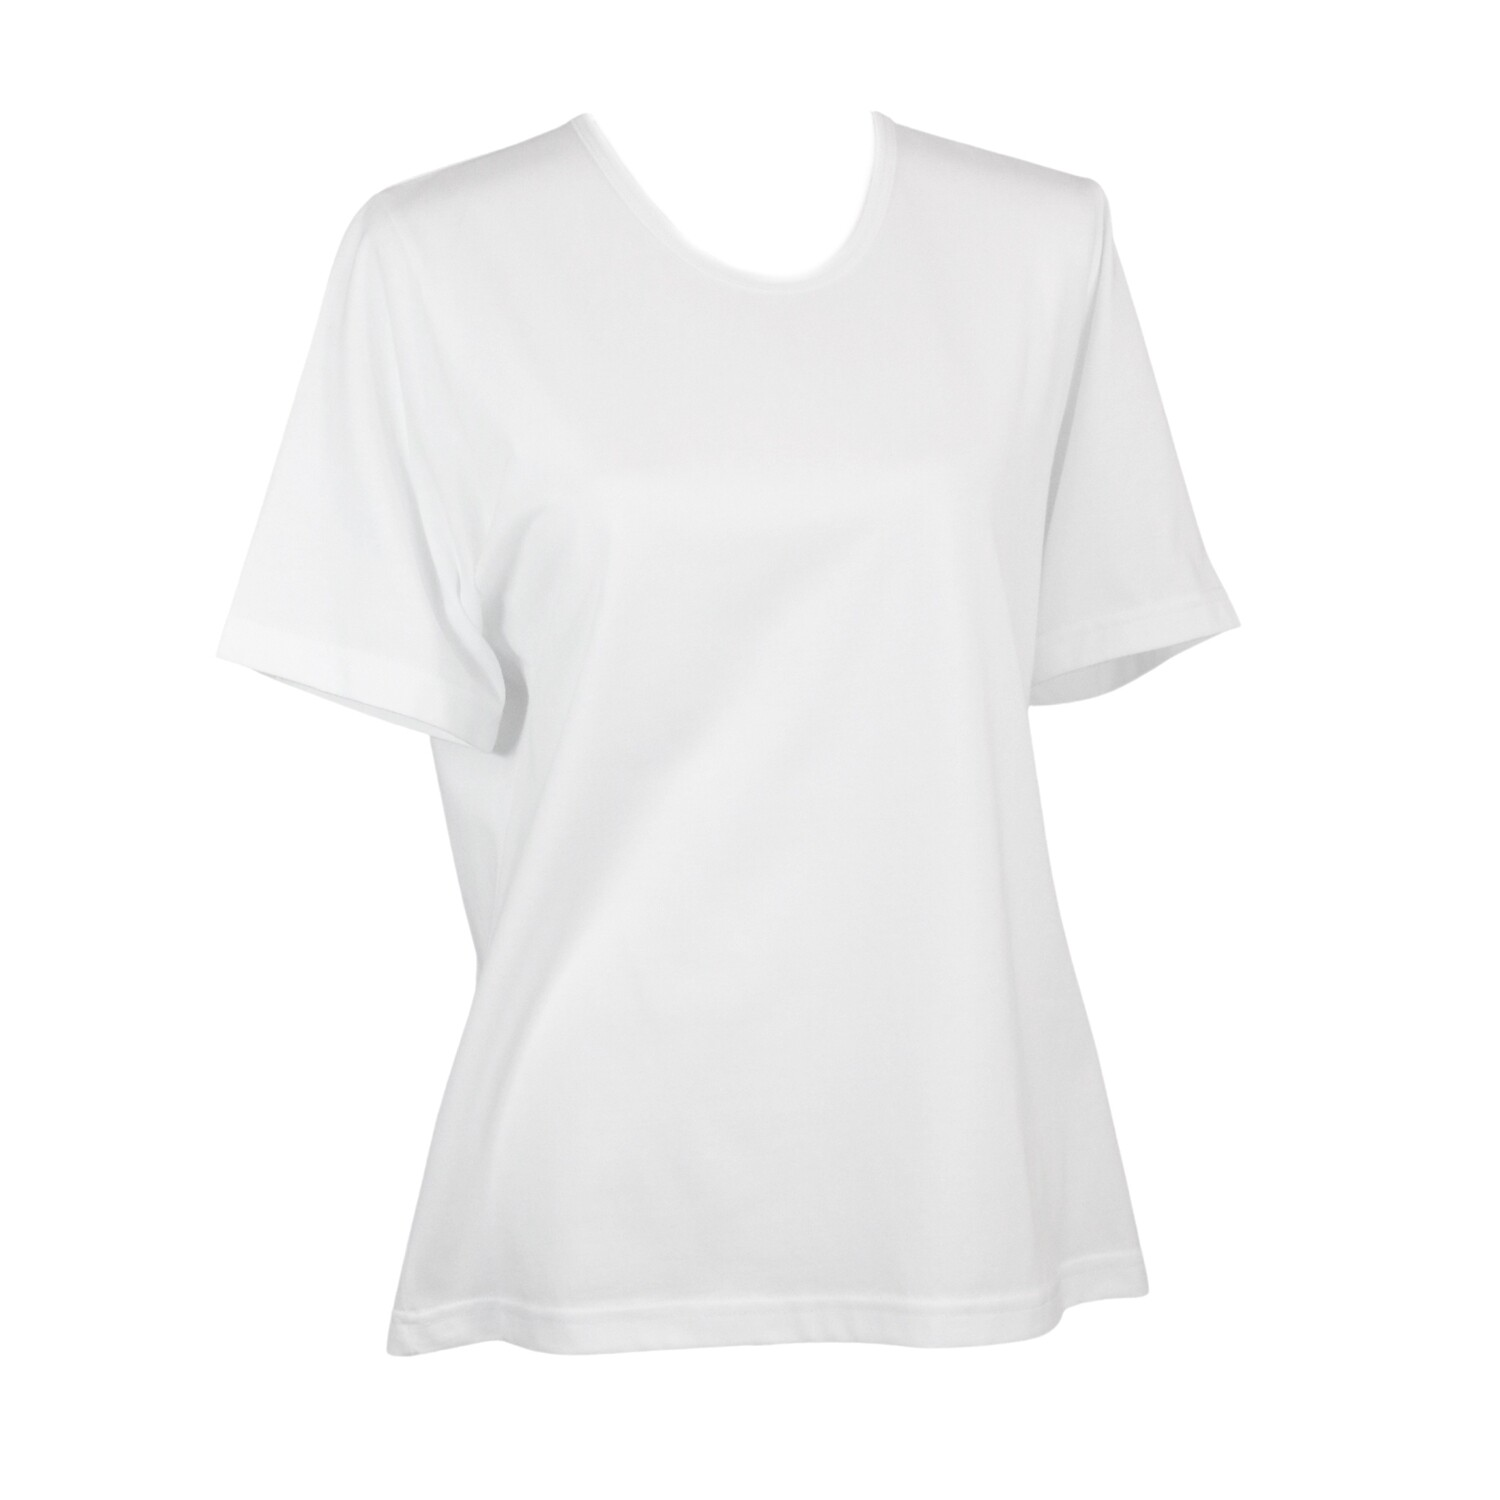 Soft Pure Cotton White Tee